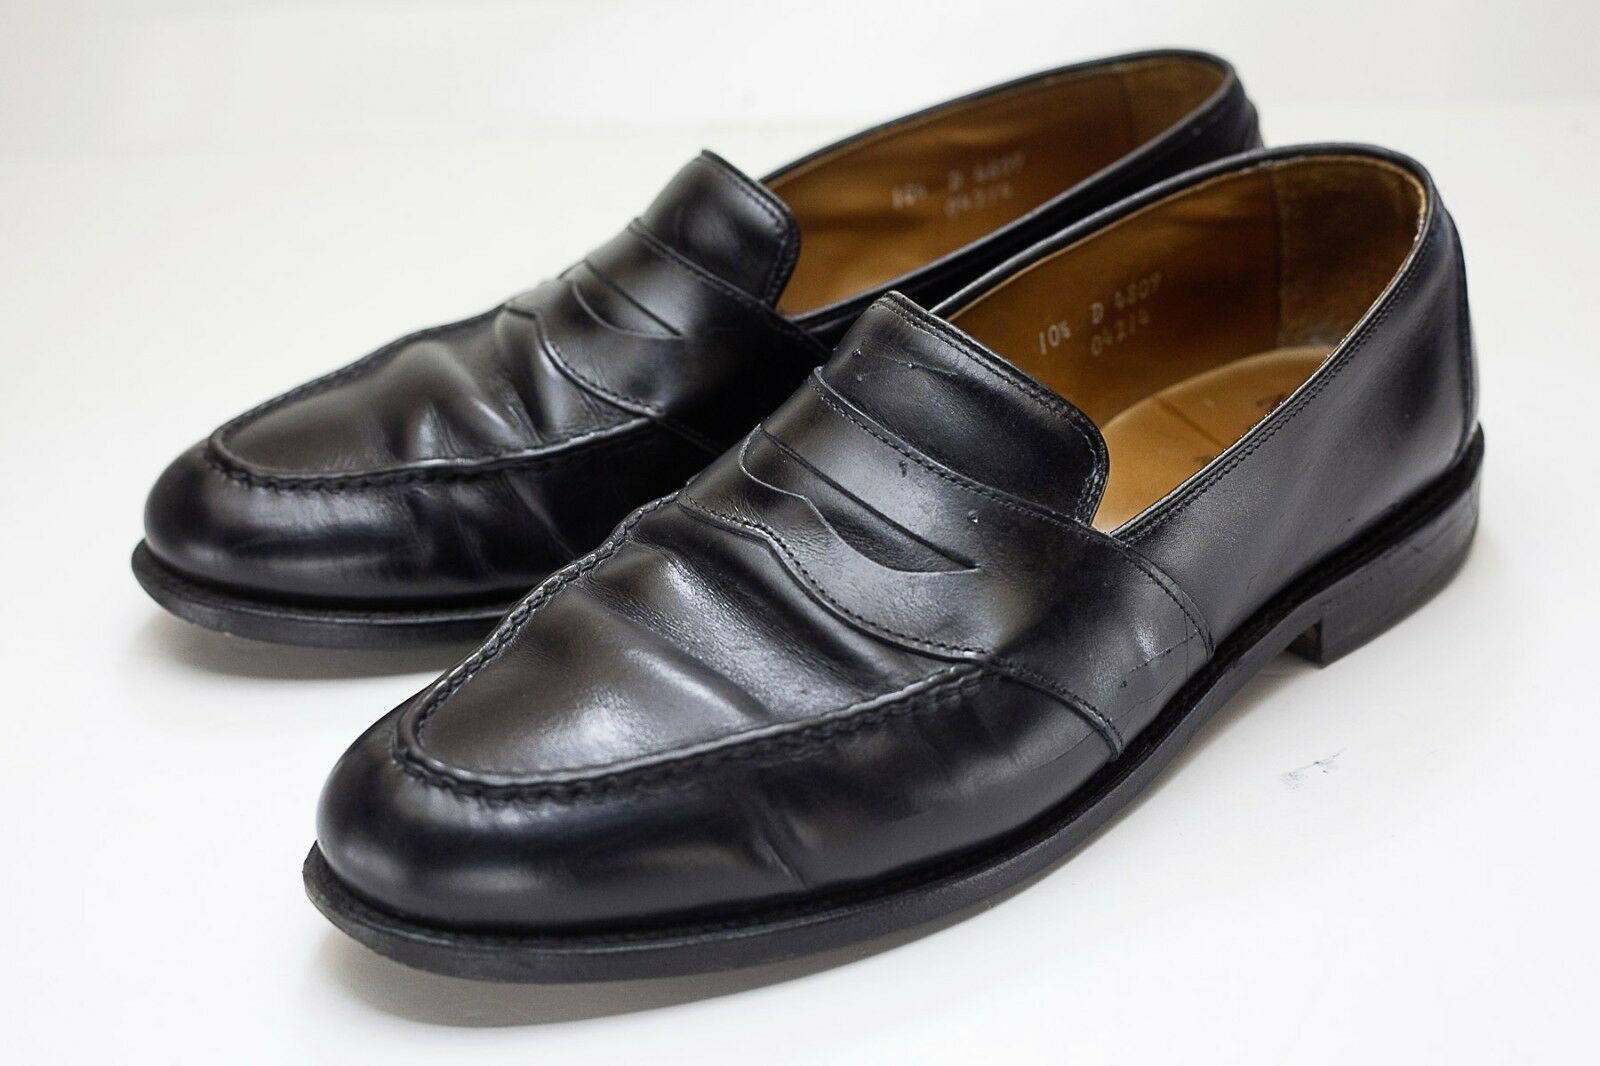 Allen Edmonds 10.5 Black Penny Loafers Men's Dress shoes